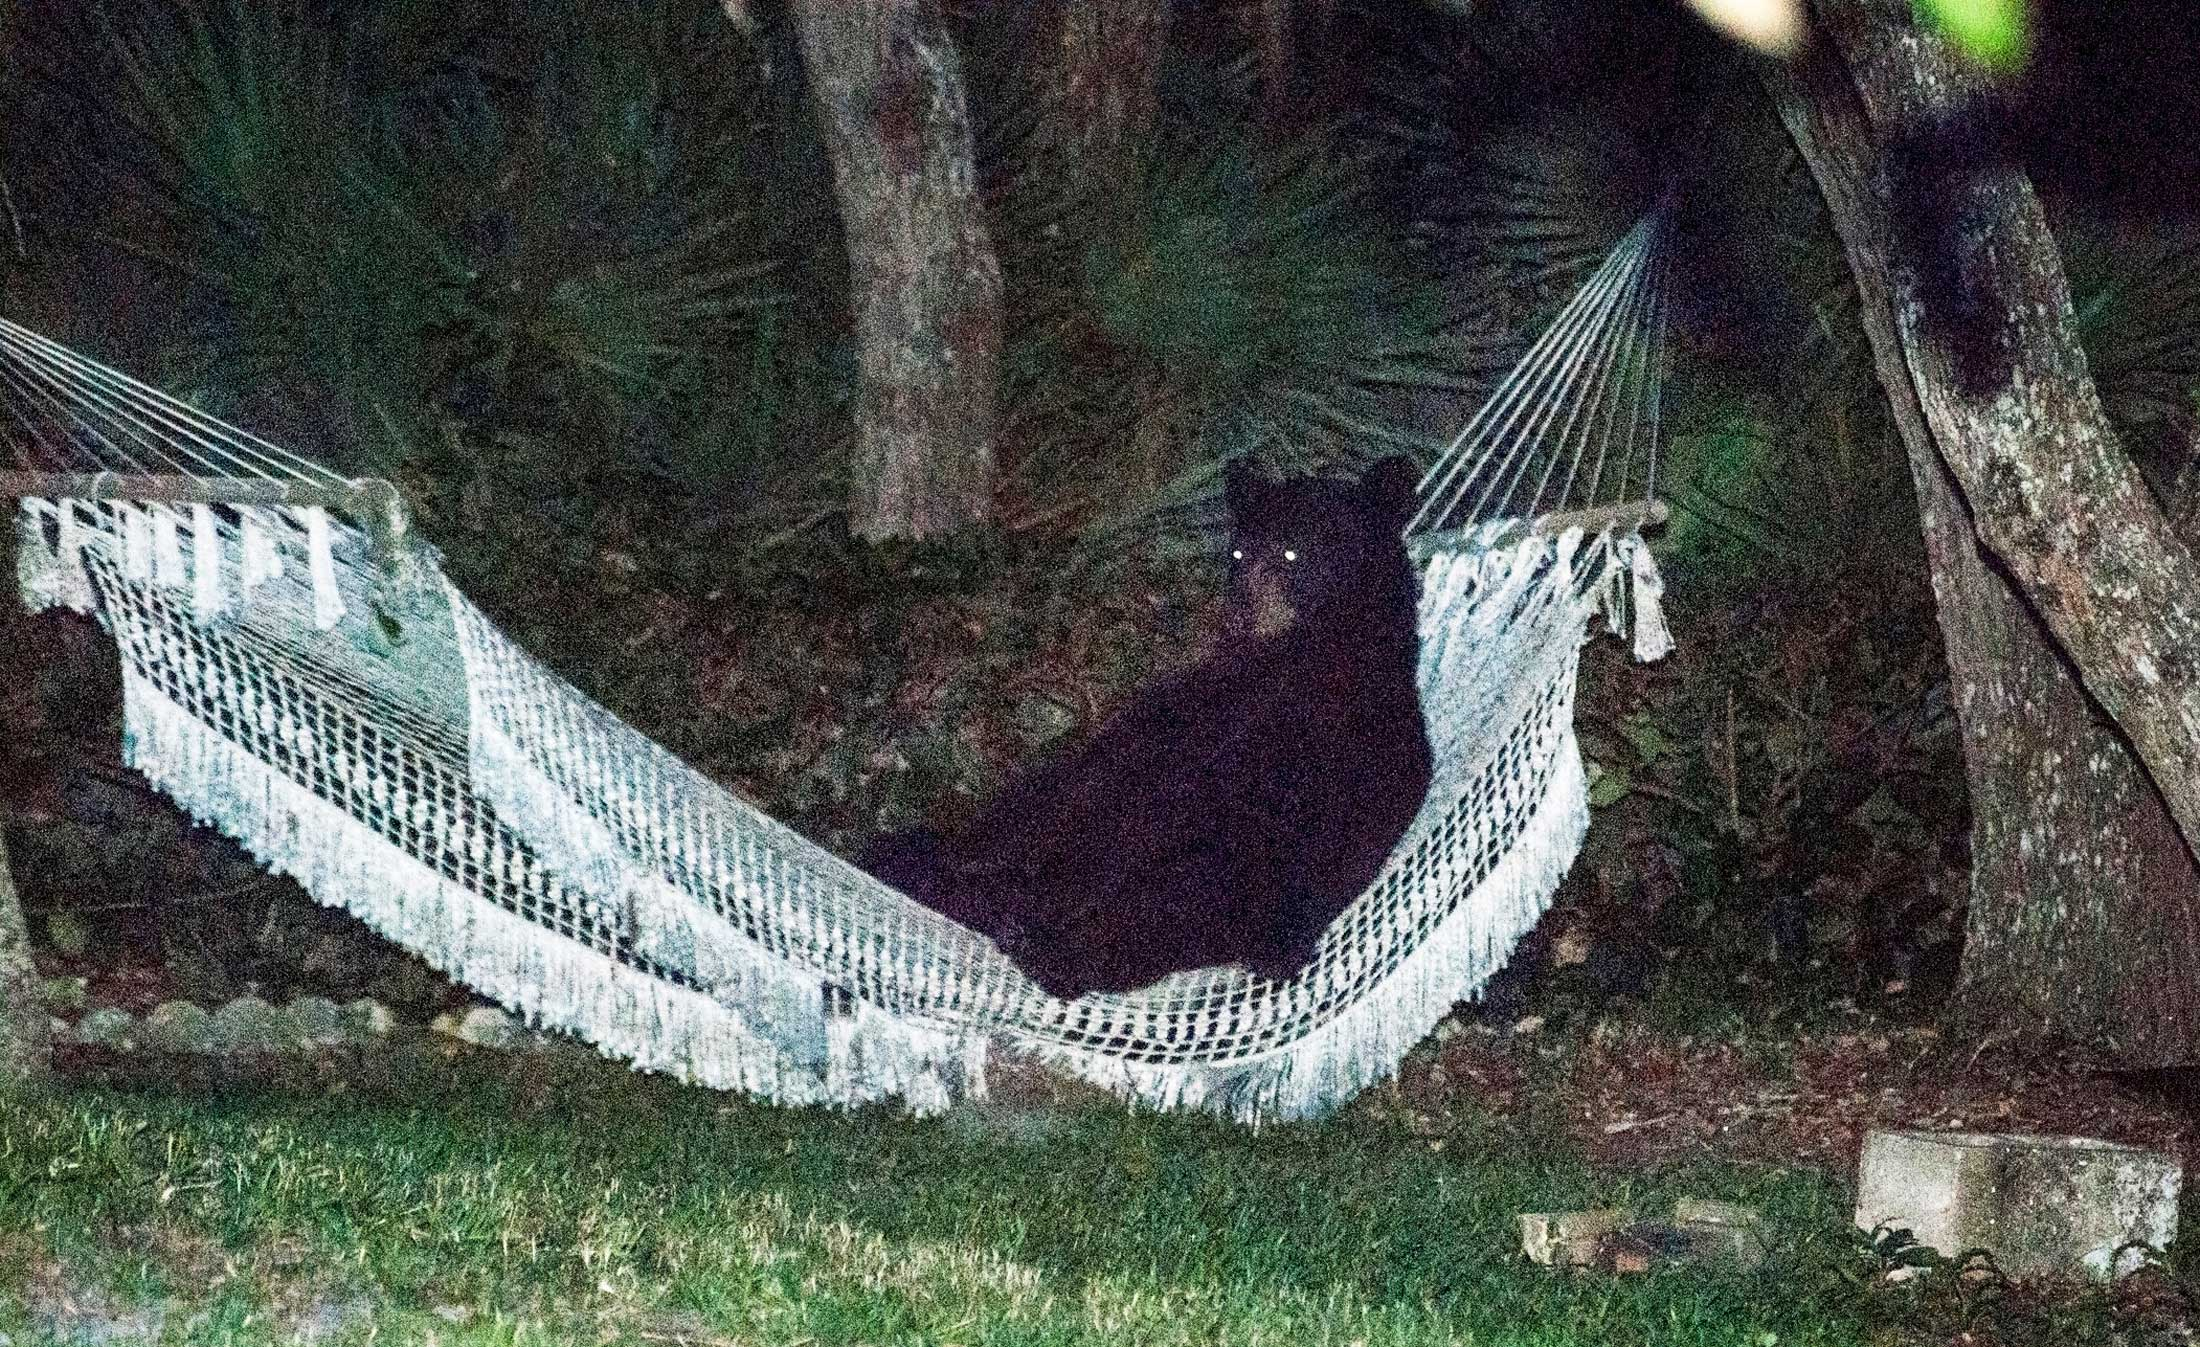 A black bear lies on a hammock at a residential back yard in Daytona Beach, Florida early evening on May 30, 2014.